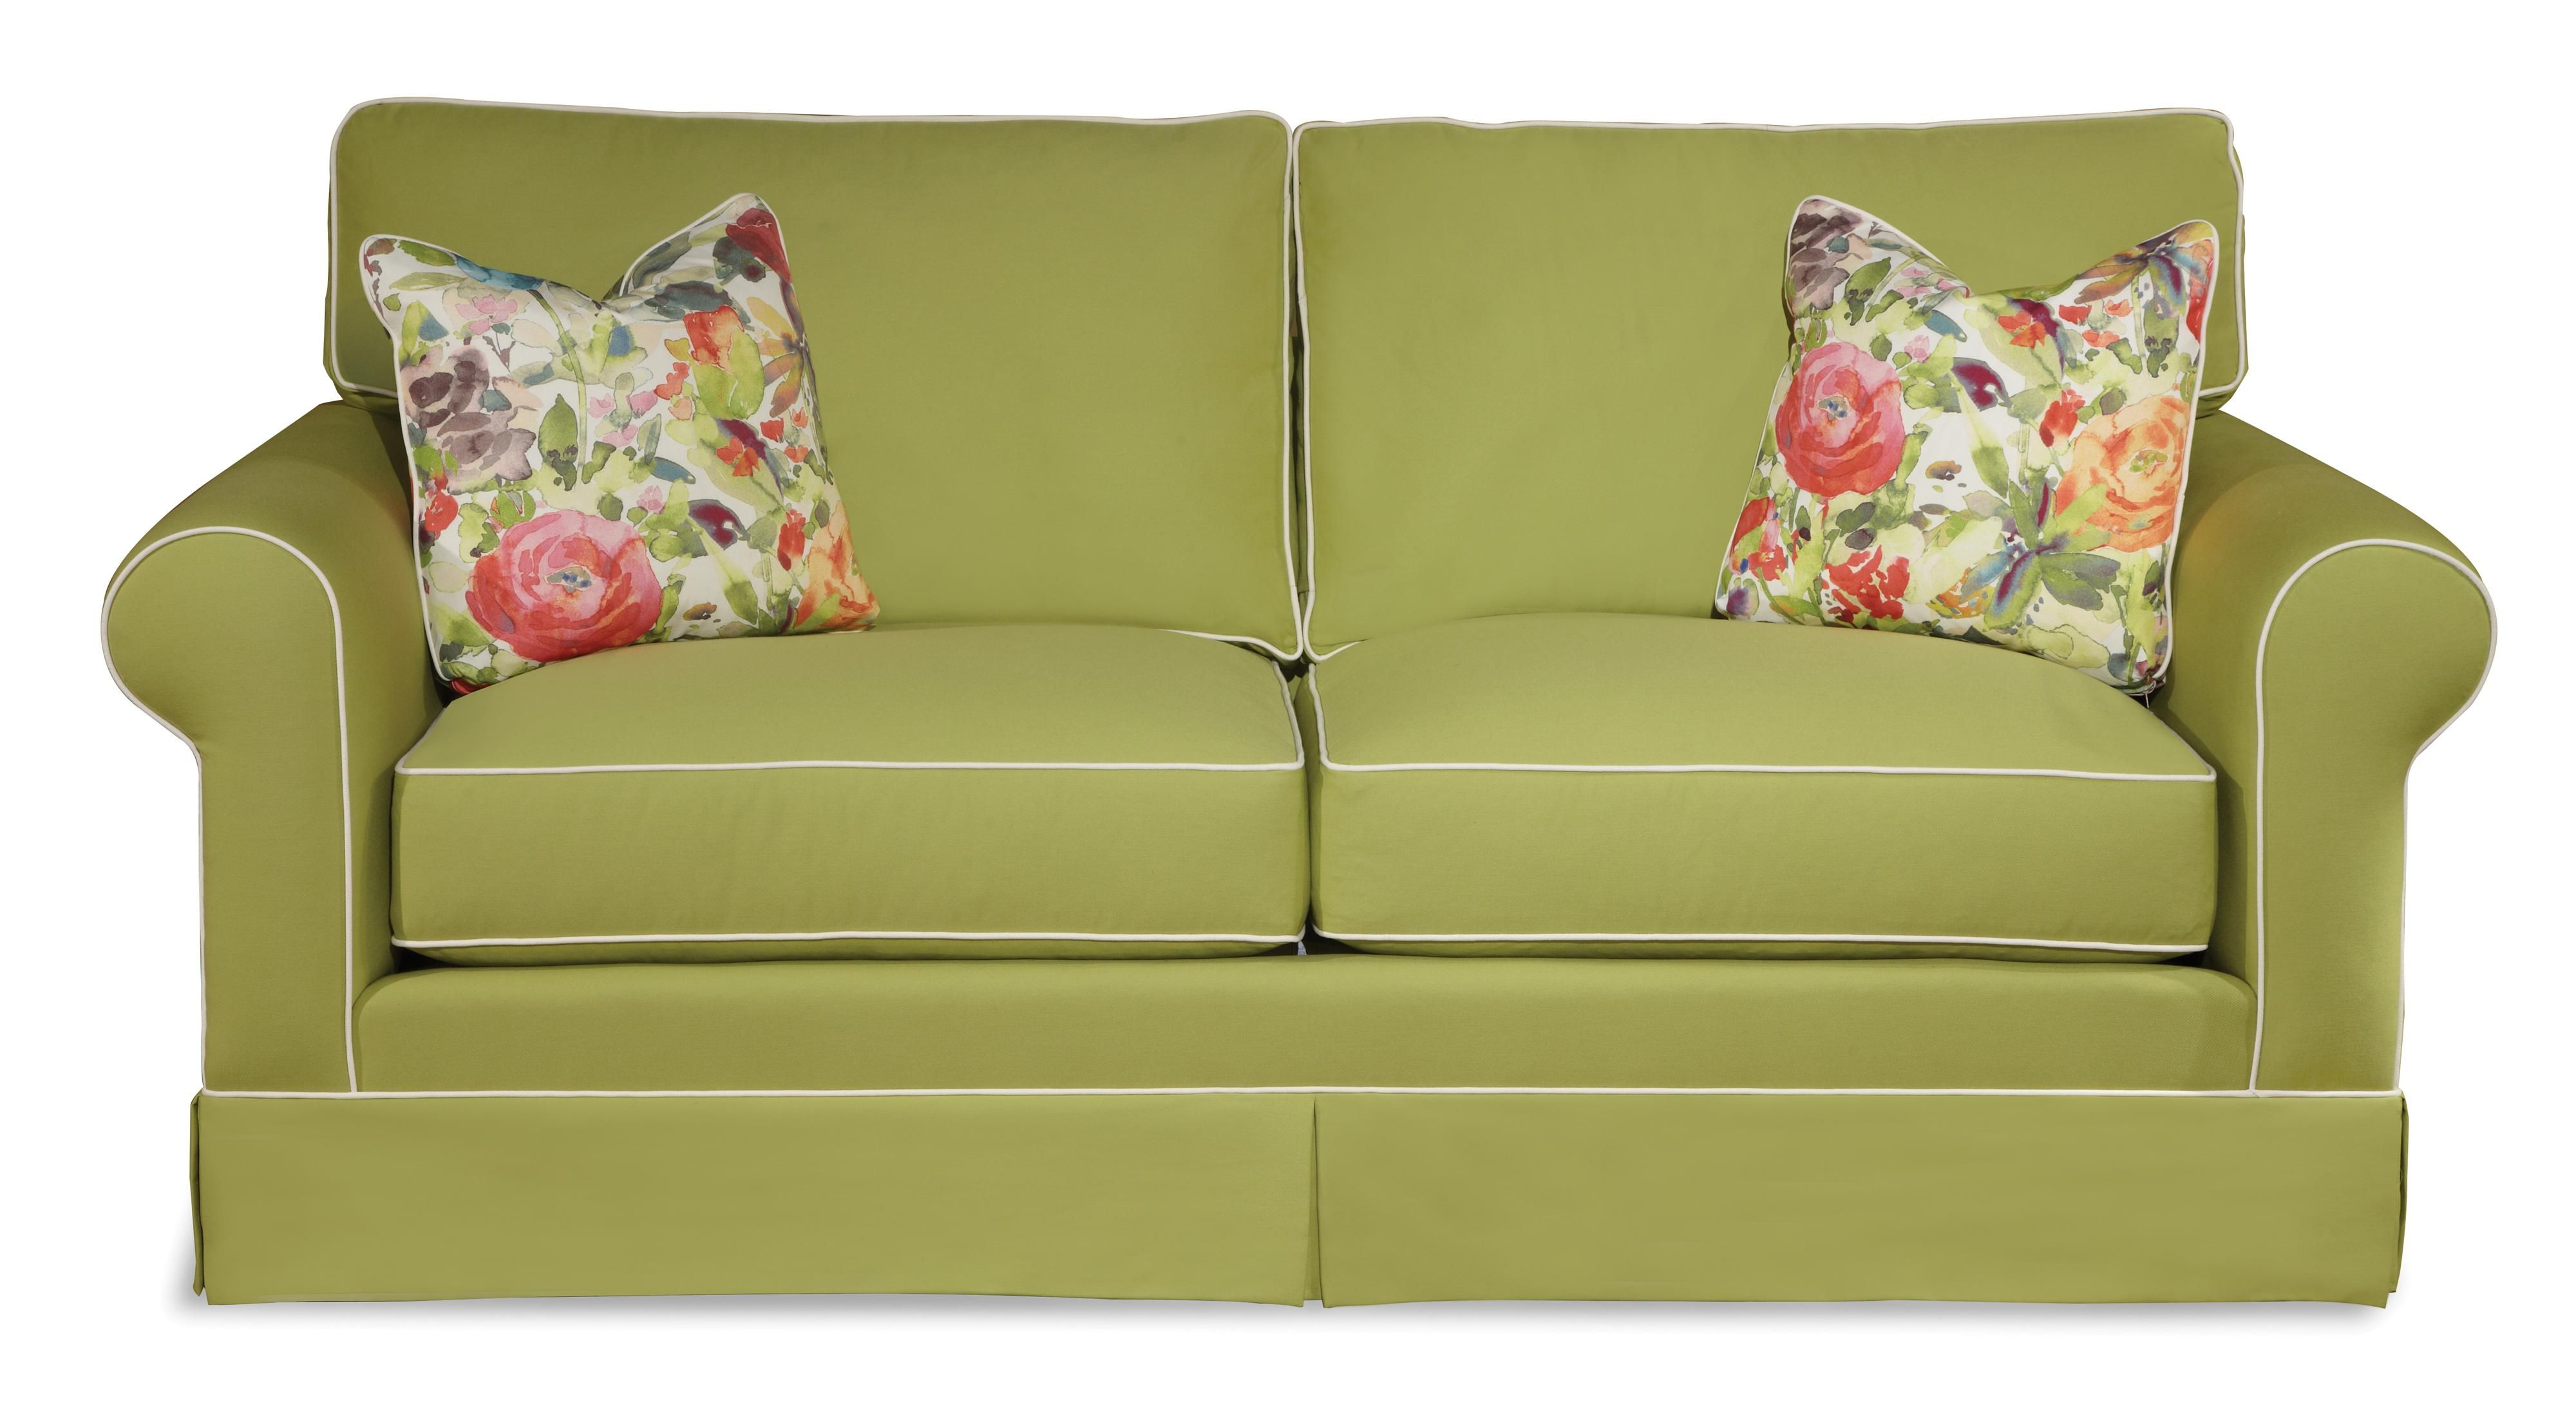 traditional sofa sleeper jackson co sydney southern shores regular air coil with by klaussner